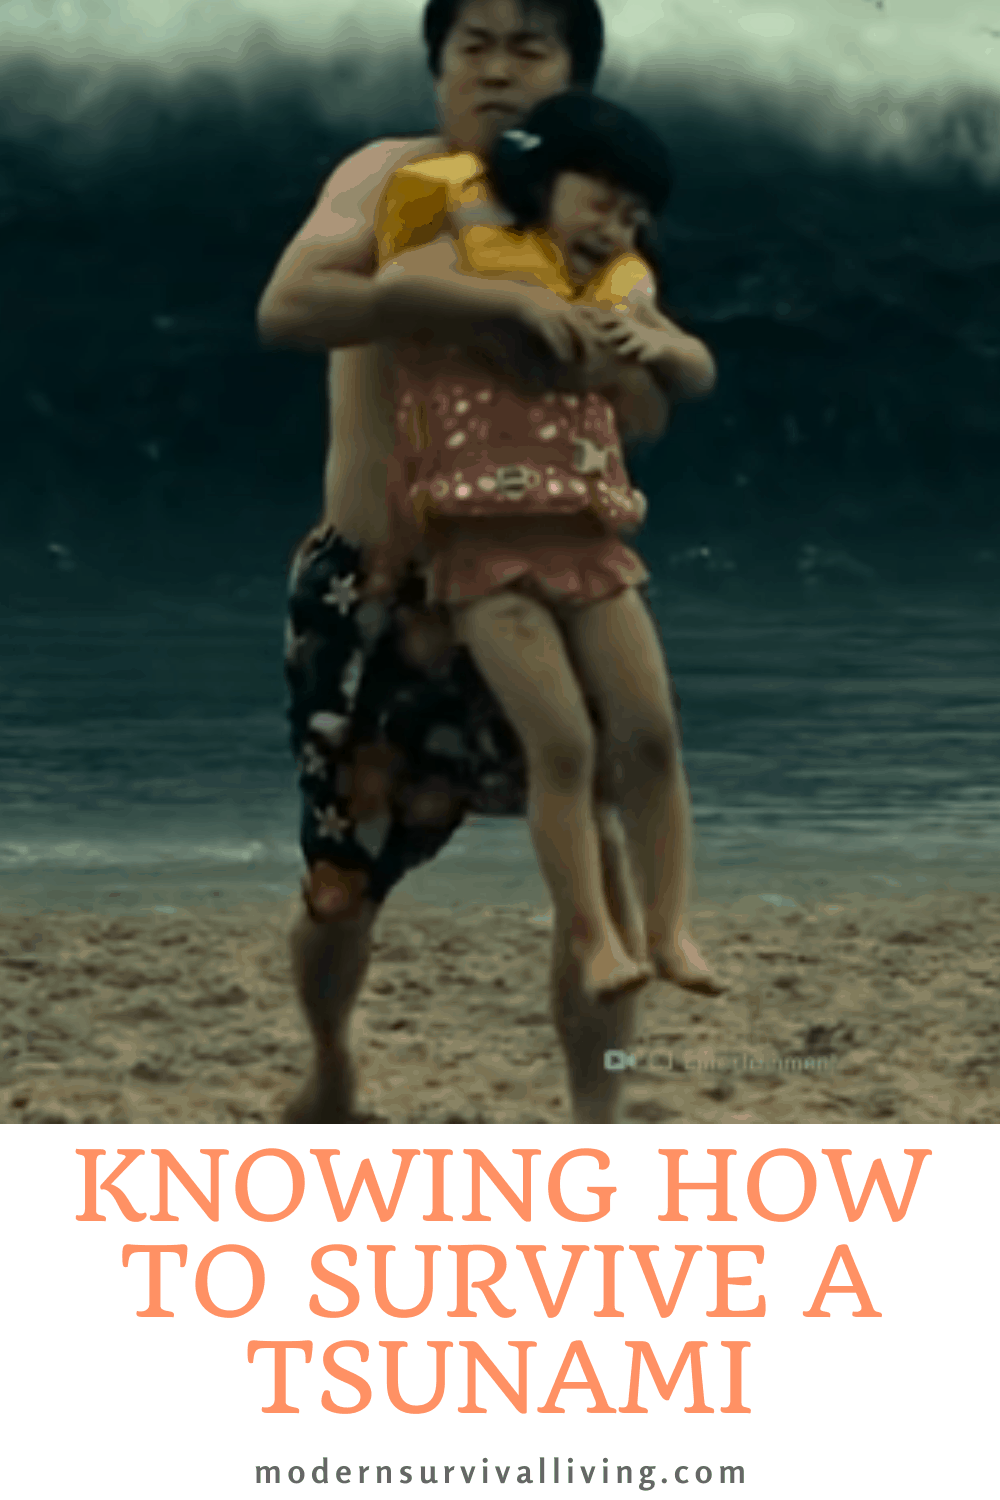 Knowing How to Survive a Tsunami